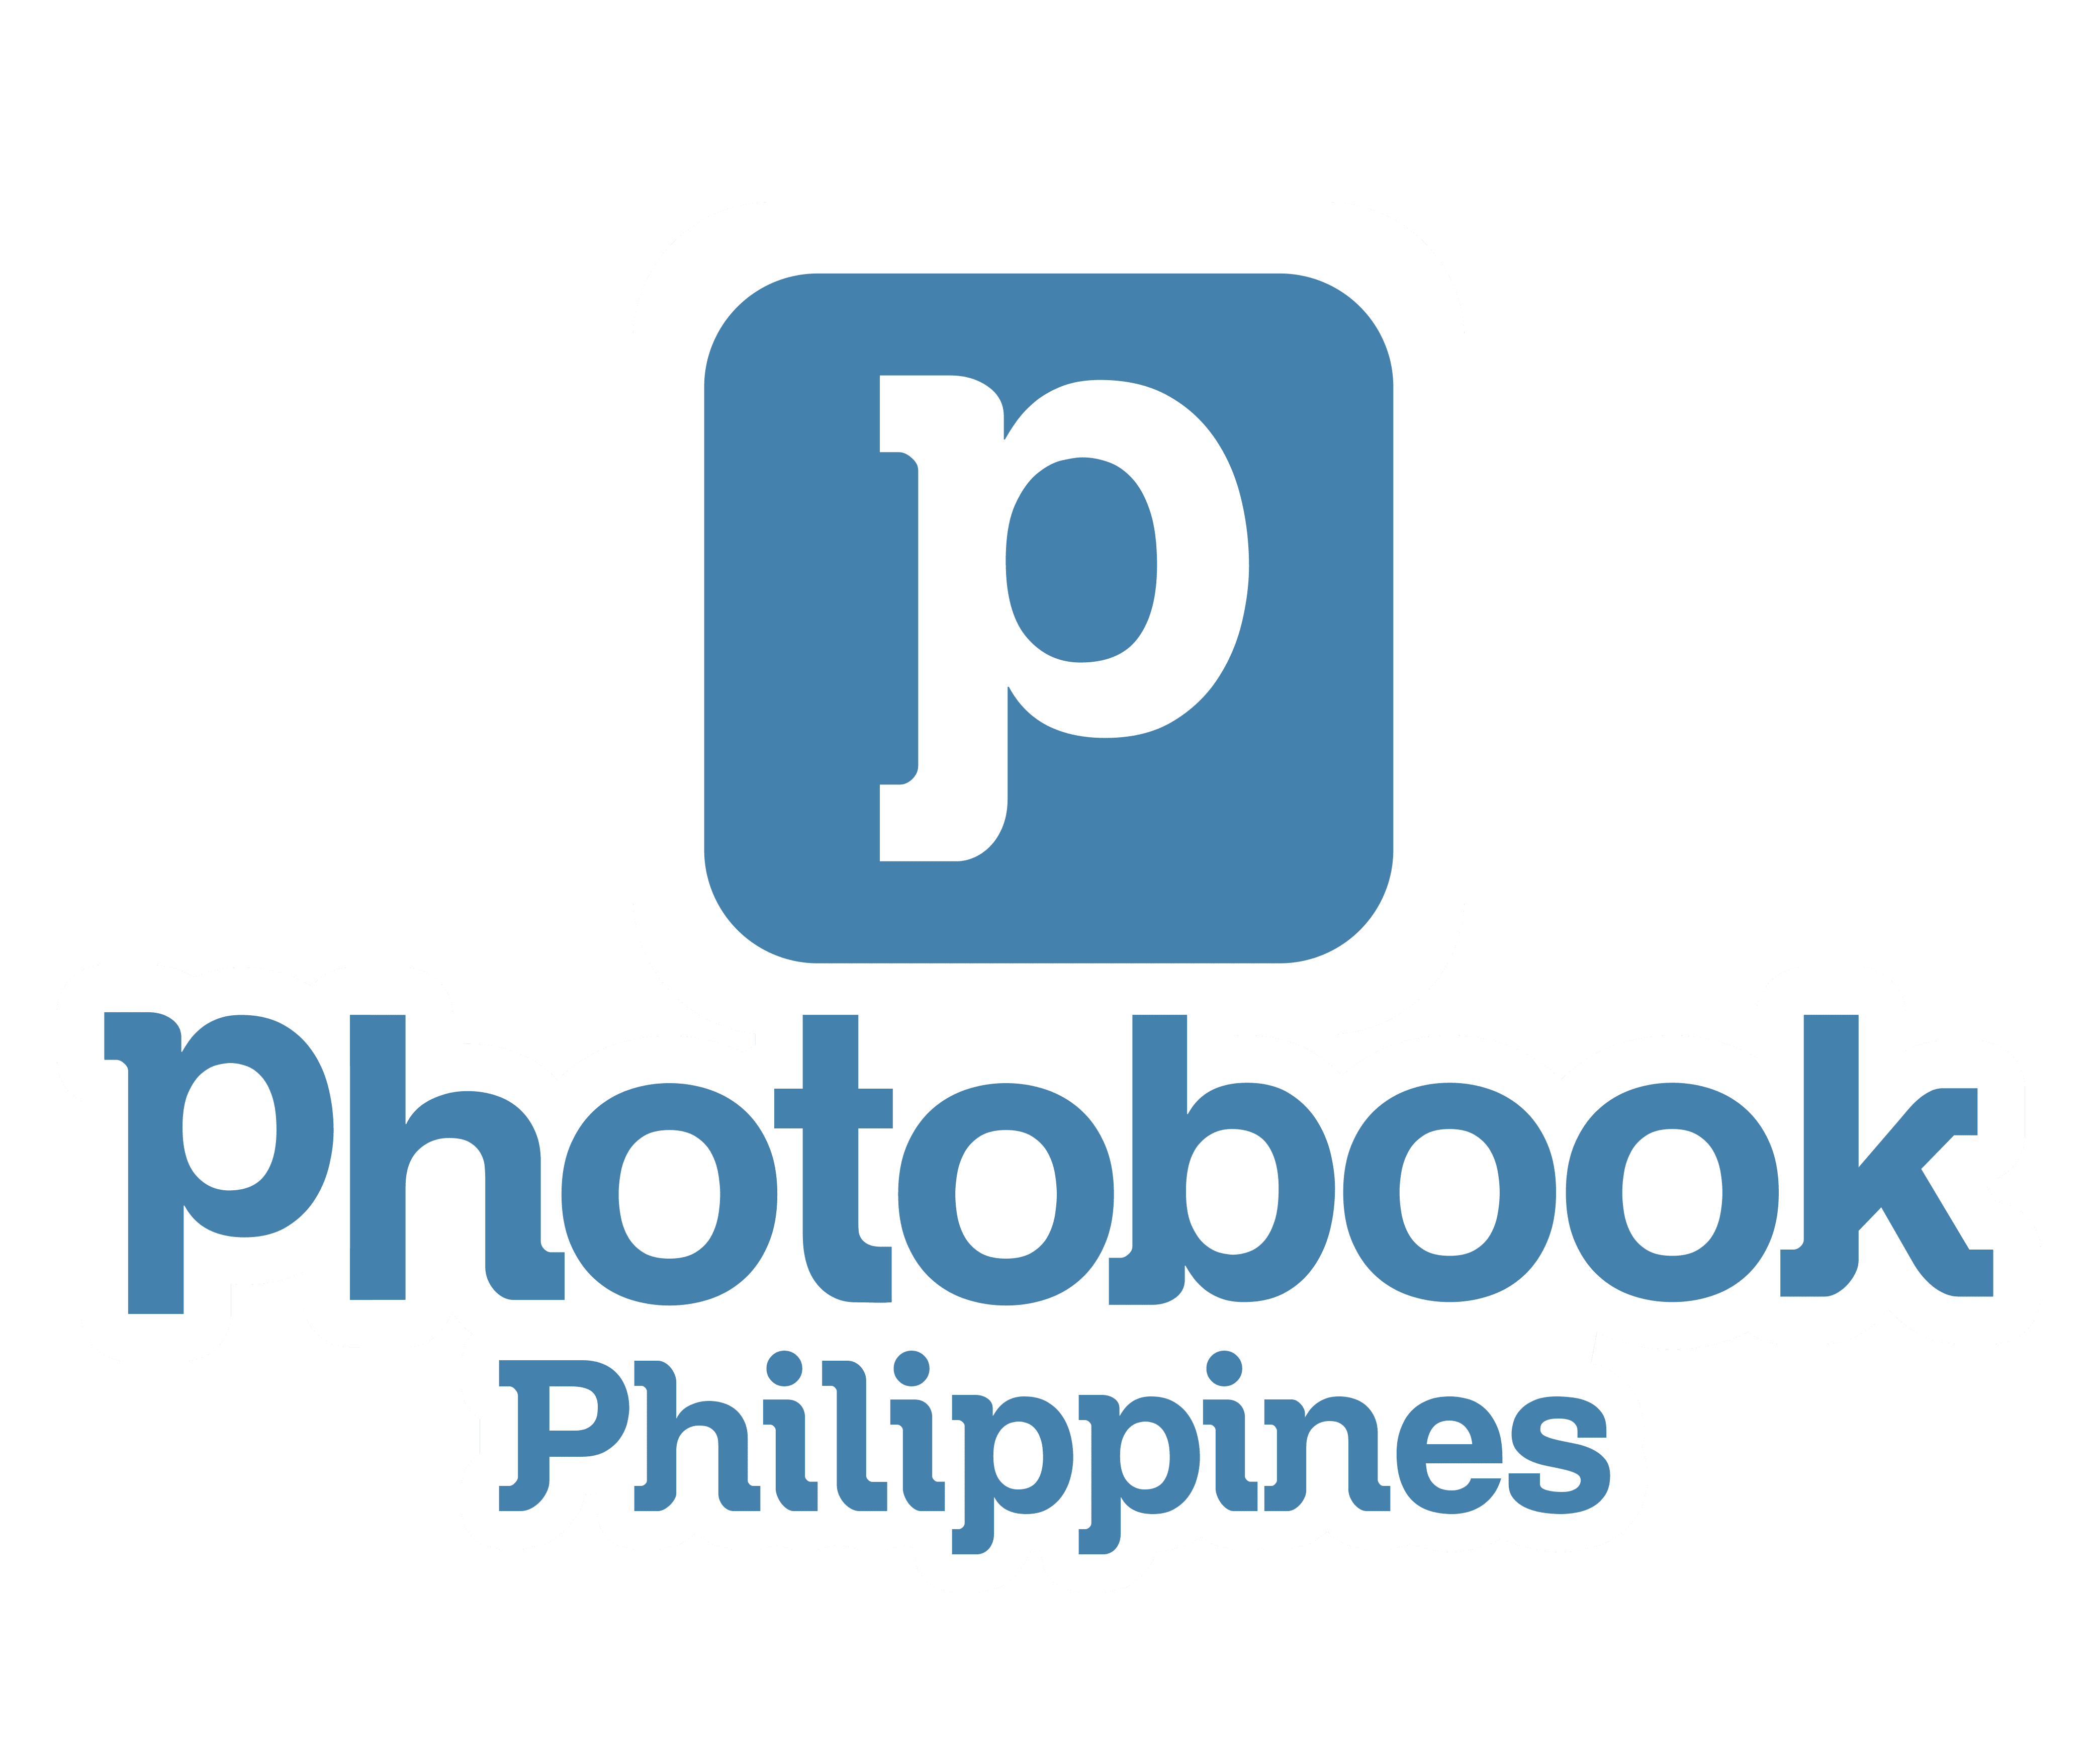 Photobook Philippines Coupons & Voucher codes 2019